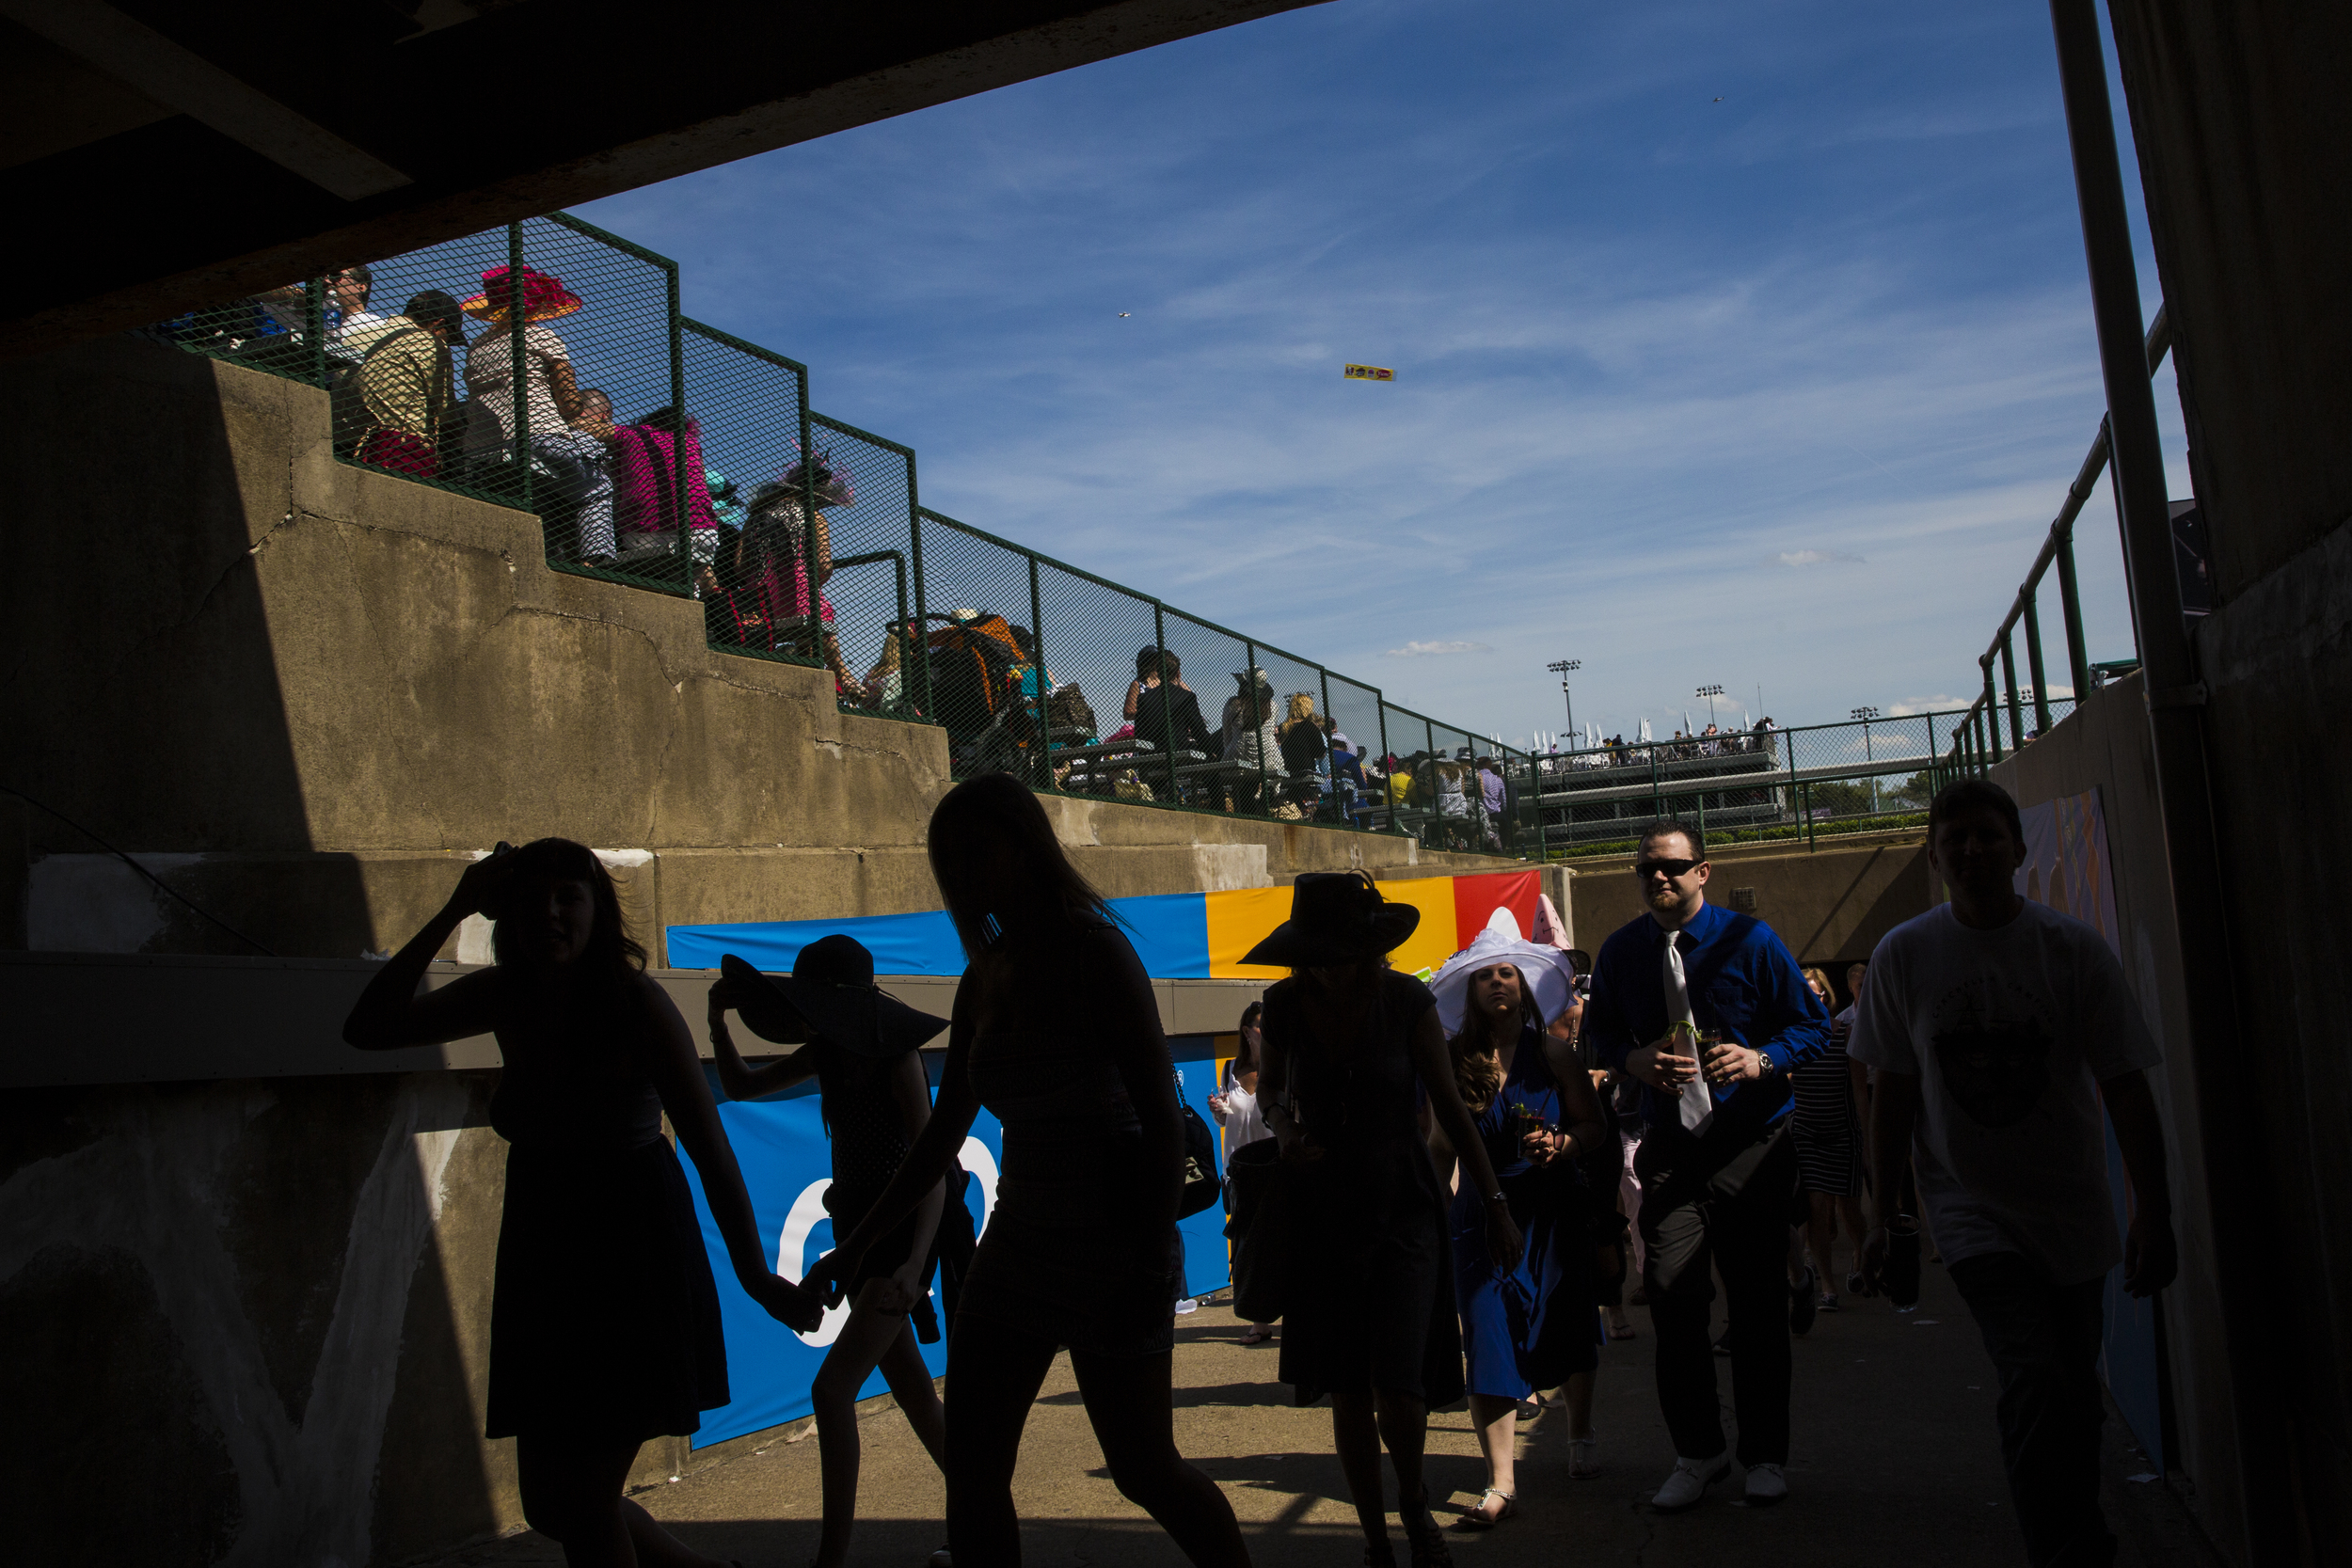 Patrons walk trough a tunnel from the infield to the grandstands on the day of the 140th Kentucky Derby at Churchill Downs in Louisville, Ky. on Saturday May 03, 2014.